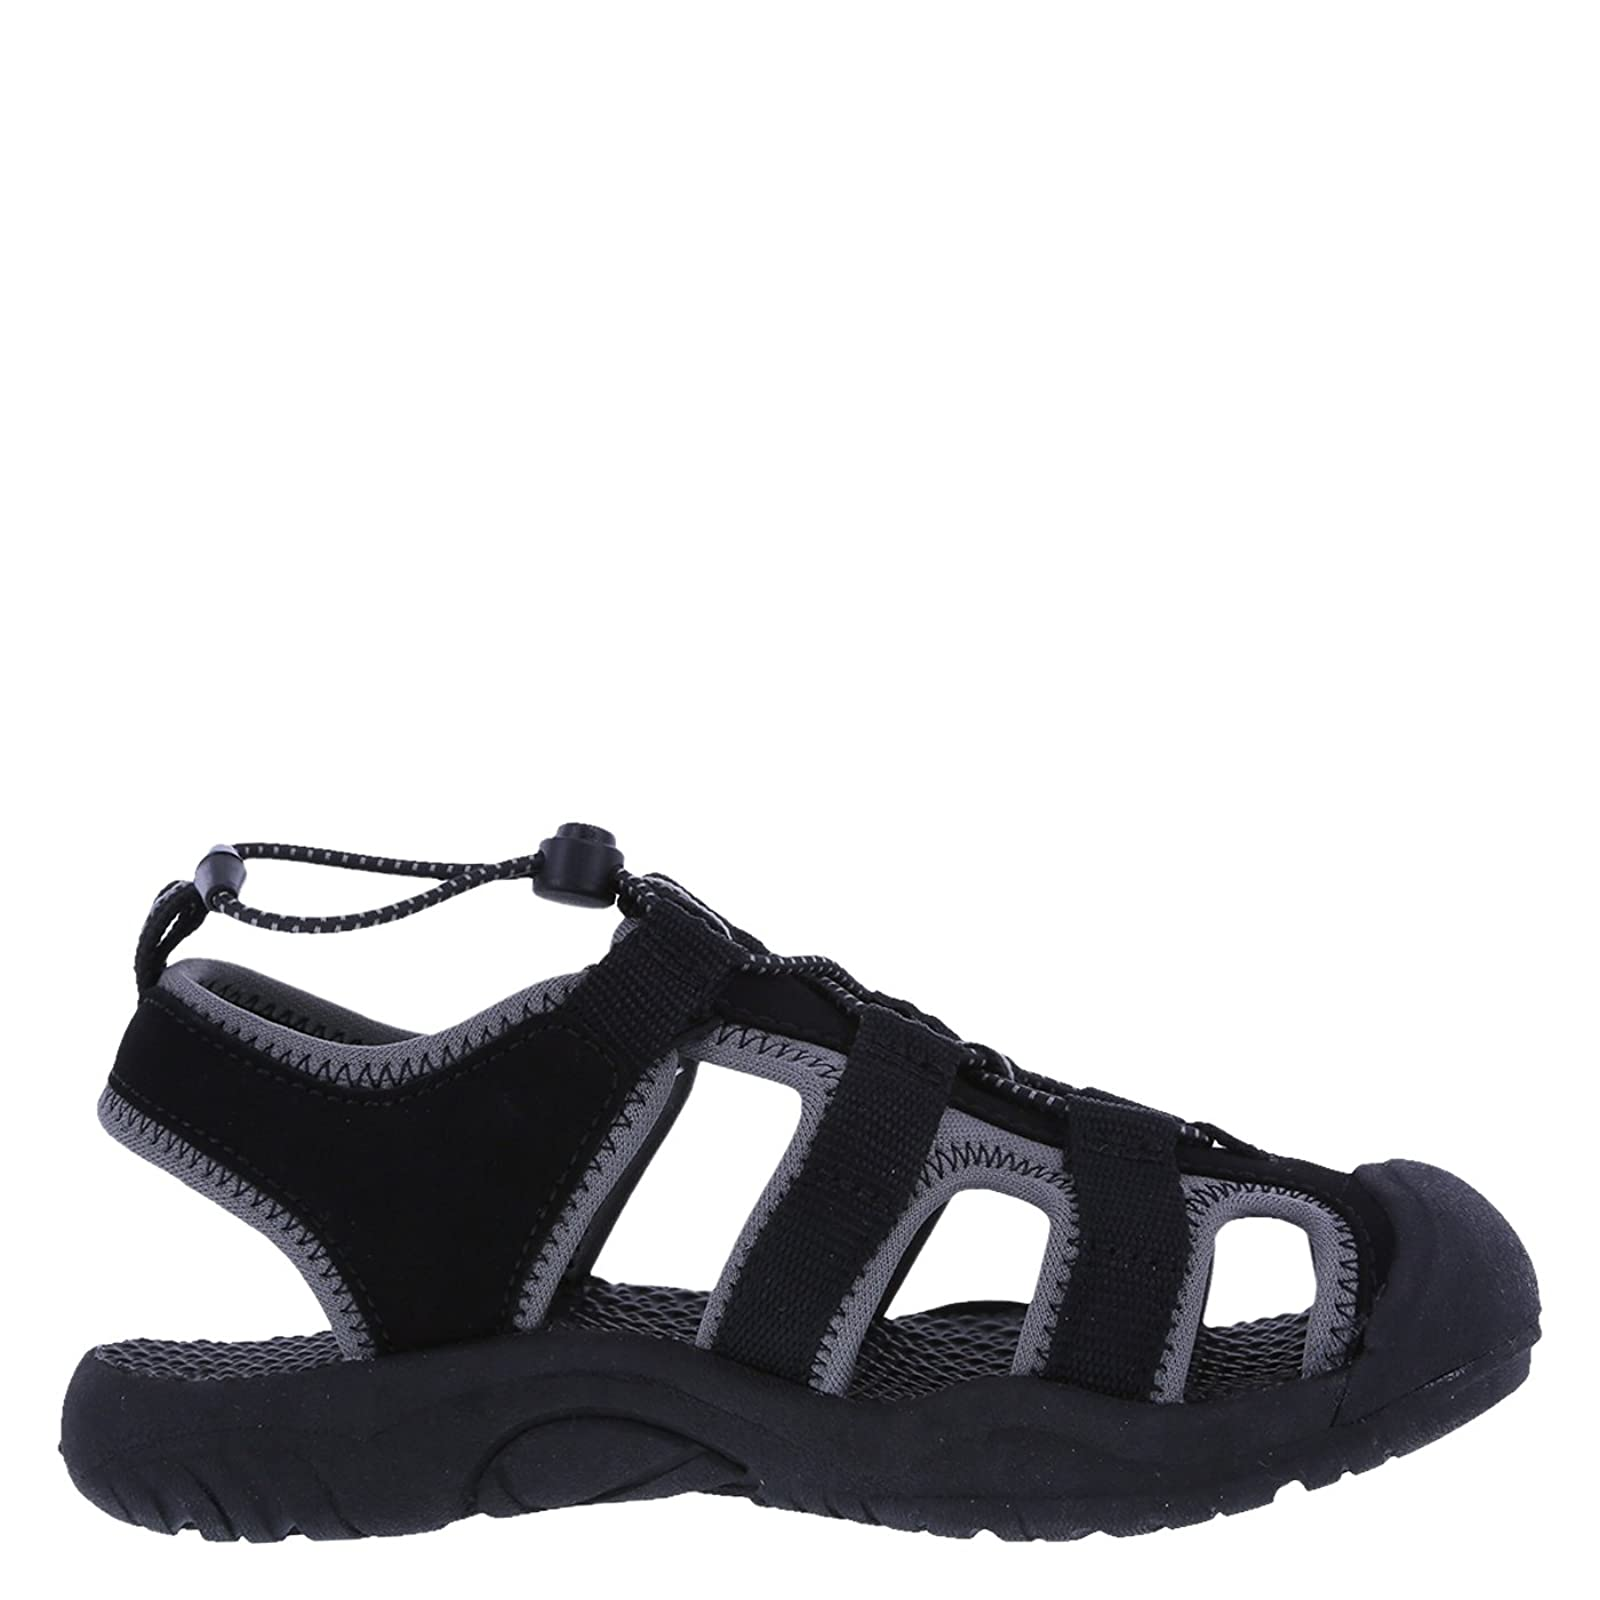 Rugged Outback Boys' Bumptoe Sandal One Size - 1